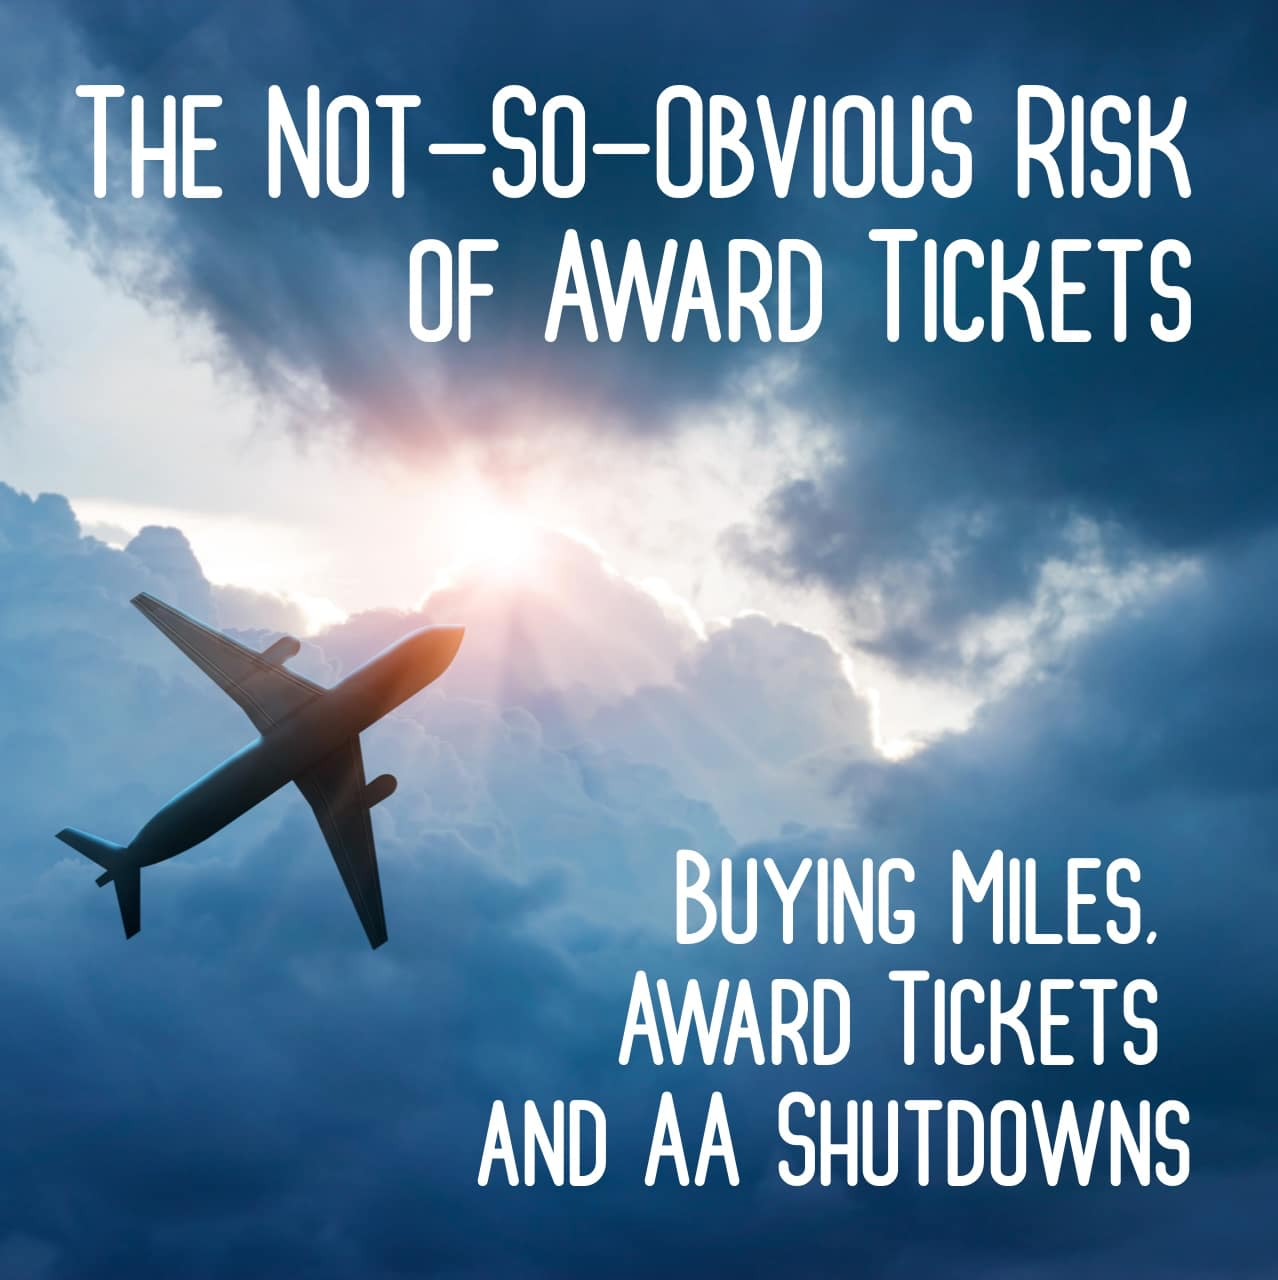 The Not-So-Obvious Risk of Award Tickets: Buying Miles, Award Tickets and AA Shutdowns